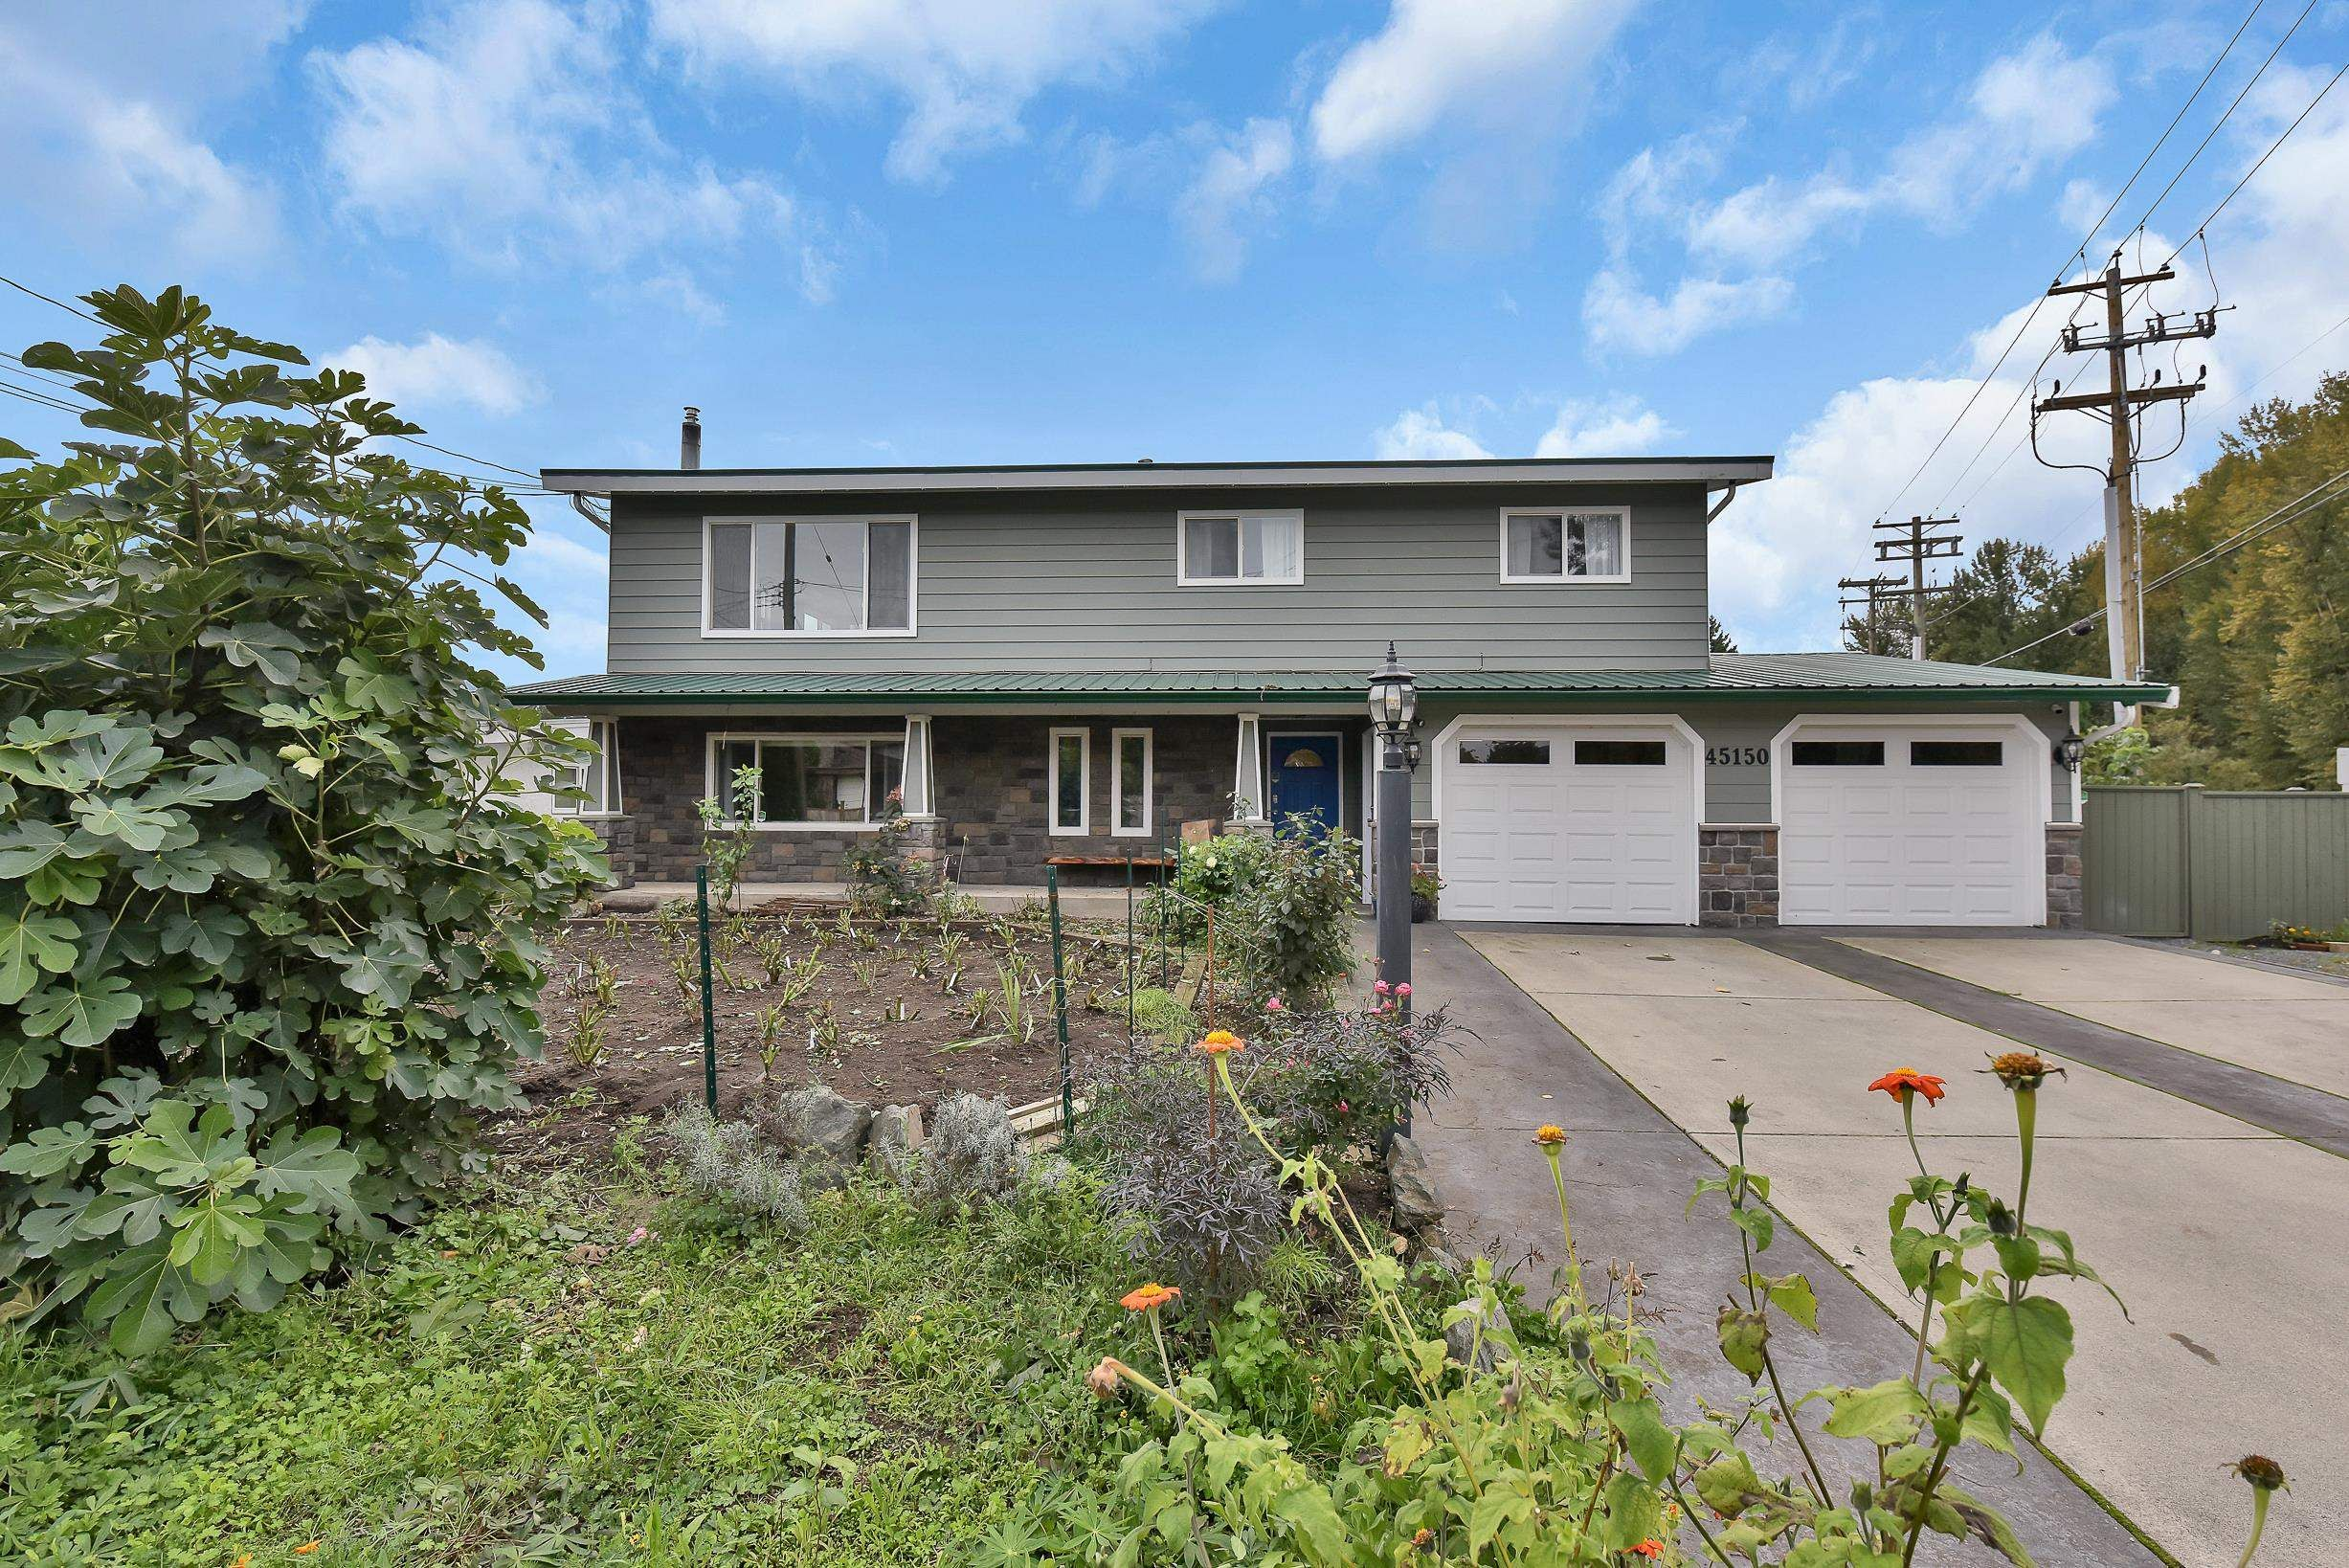 Main Photo: 45150 MOODY Avenue in Chilliwack: Chilliwack W Young-Well House for sale : MLS®# R2625298